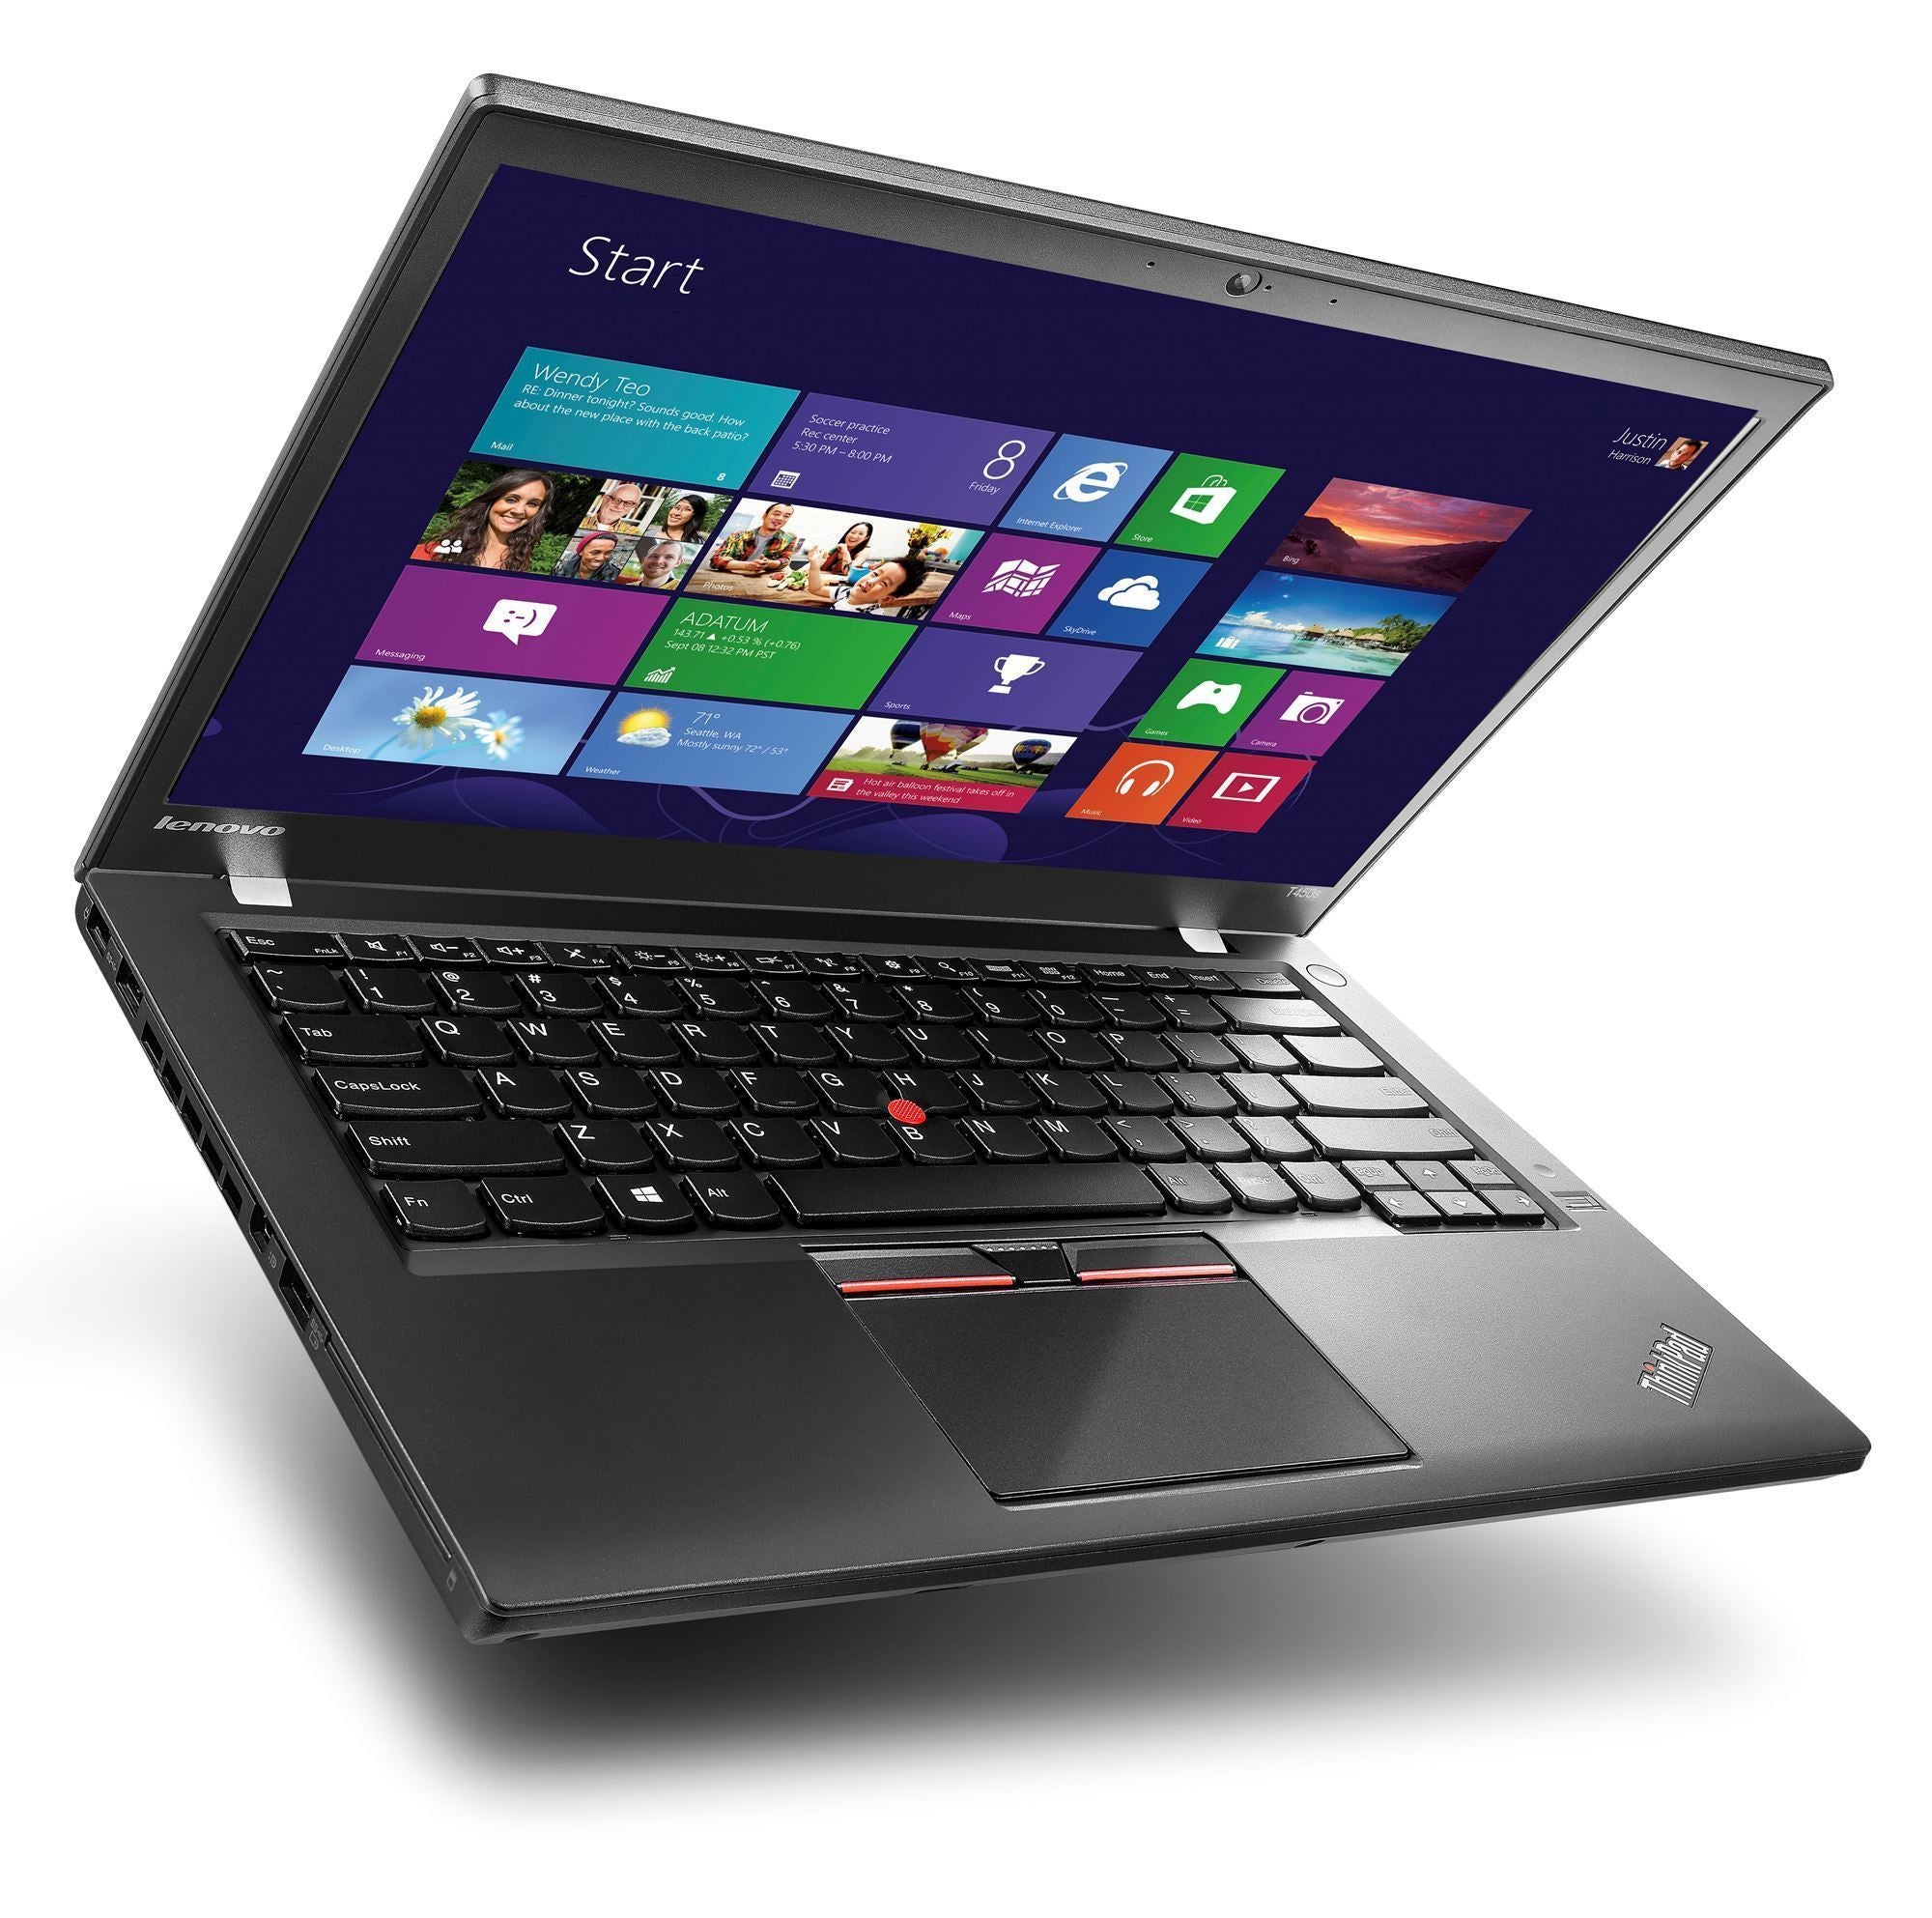 "Lenovo ThinkPad X250 Ex Lease Laptop i5-5300U 2.20GHz 8GB RAM 128GB SSD 12.5"" WebCam Windows 10 Pro"